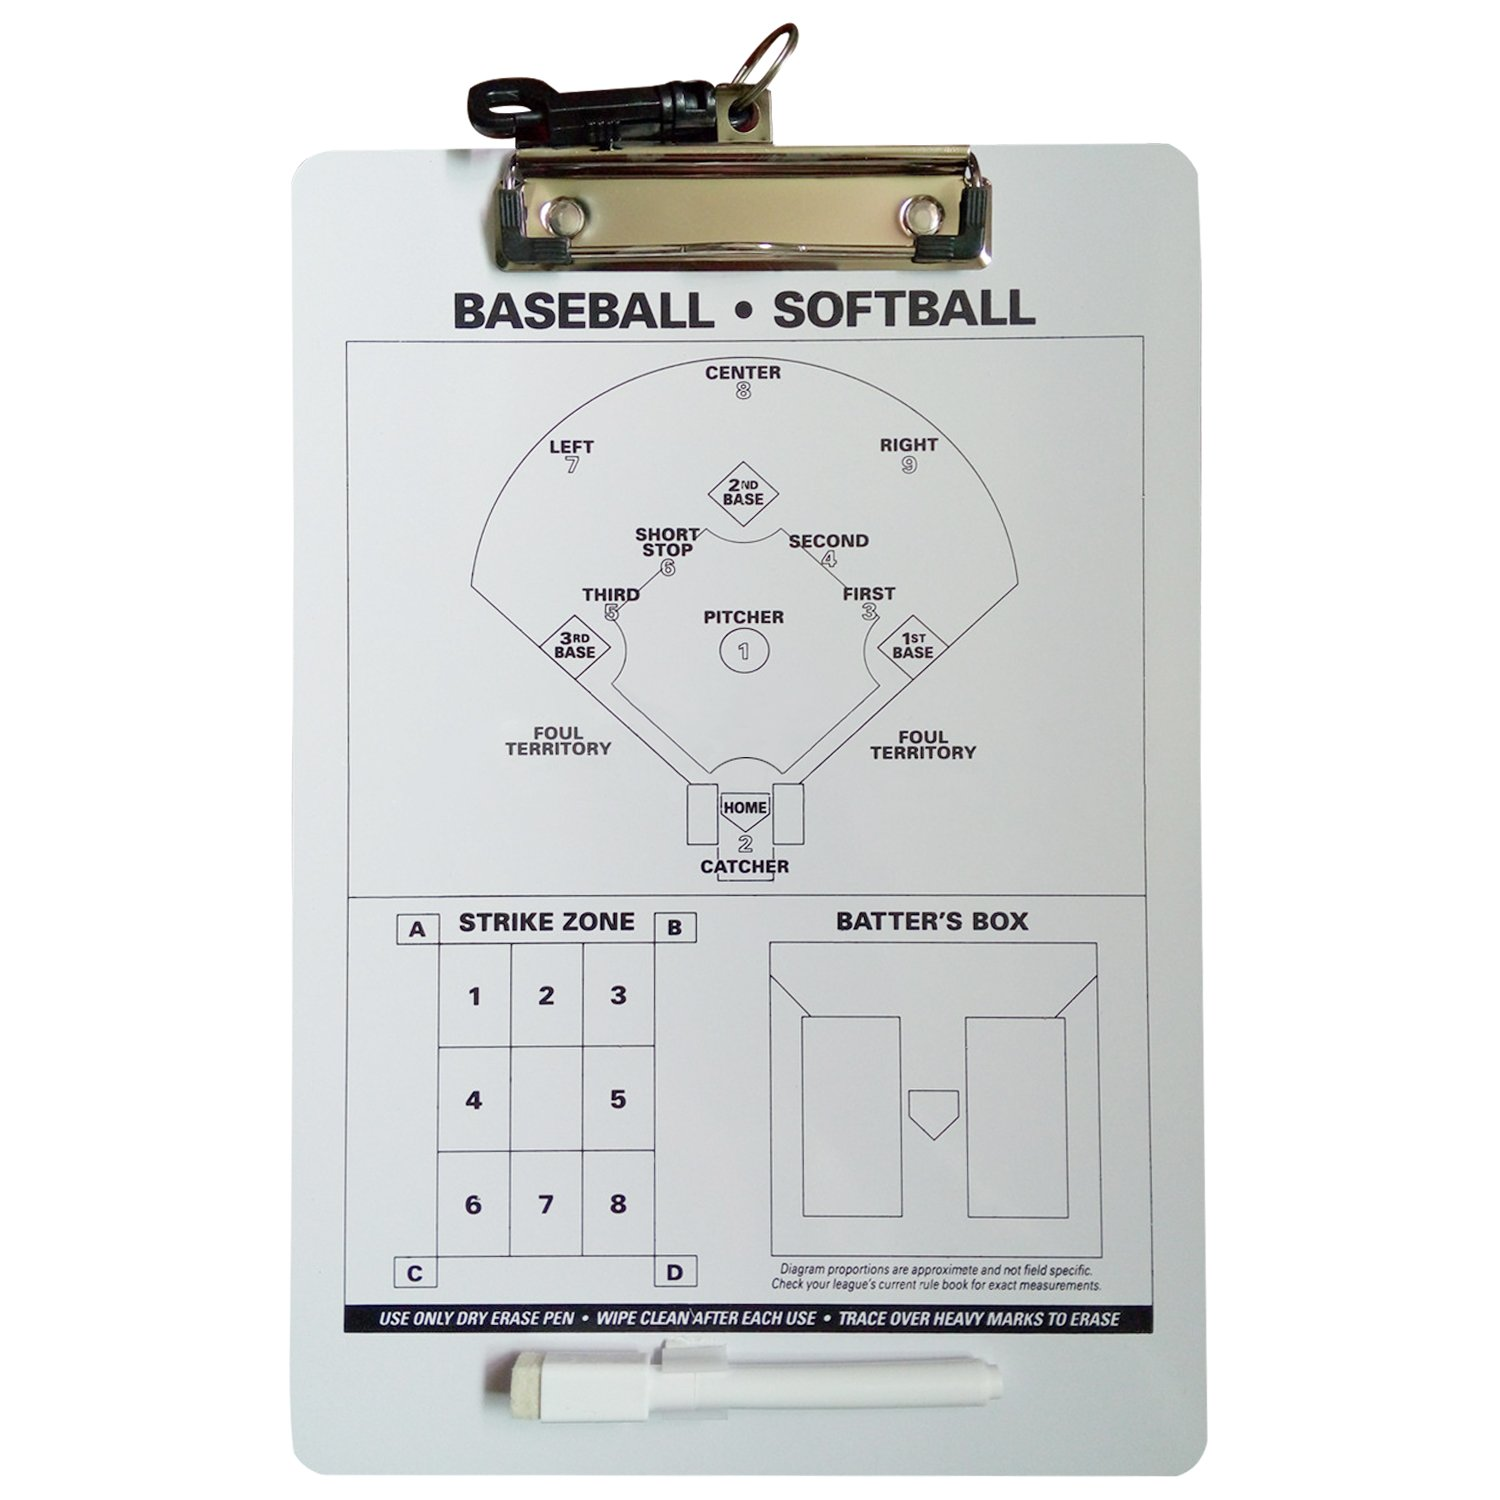 Odowalker Baseball Clipboard Softball Lineup Board Coach Tactics Board Coach's Traning Aid Match Plan Strategy Notebook with Dry Erase Marker Pen Lamilla